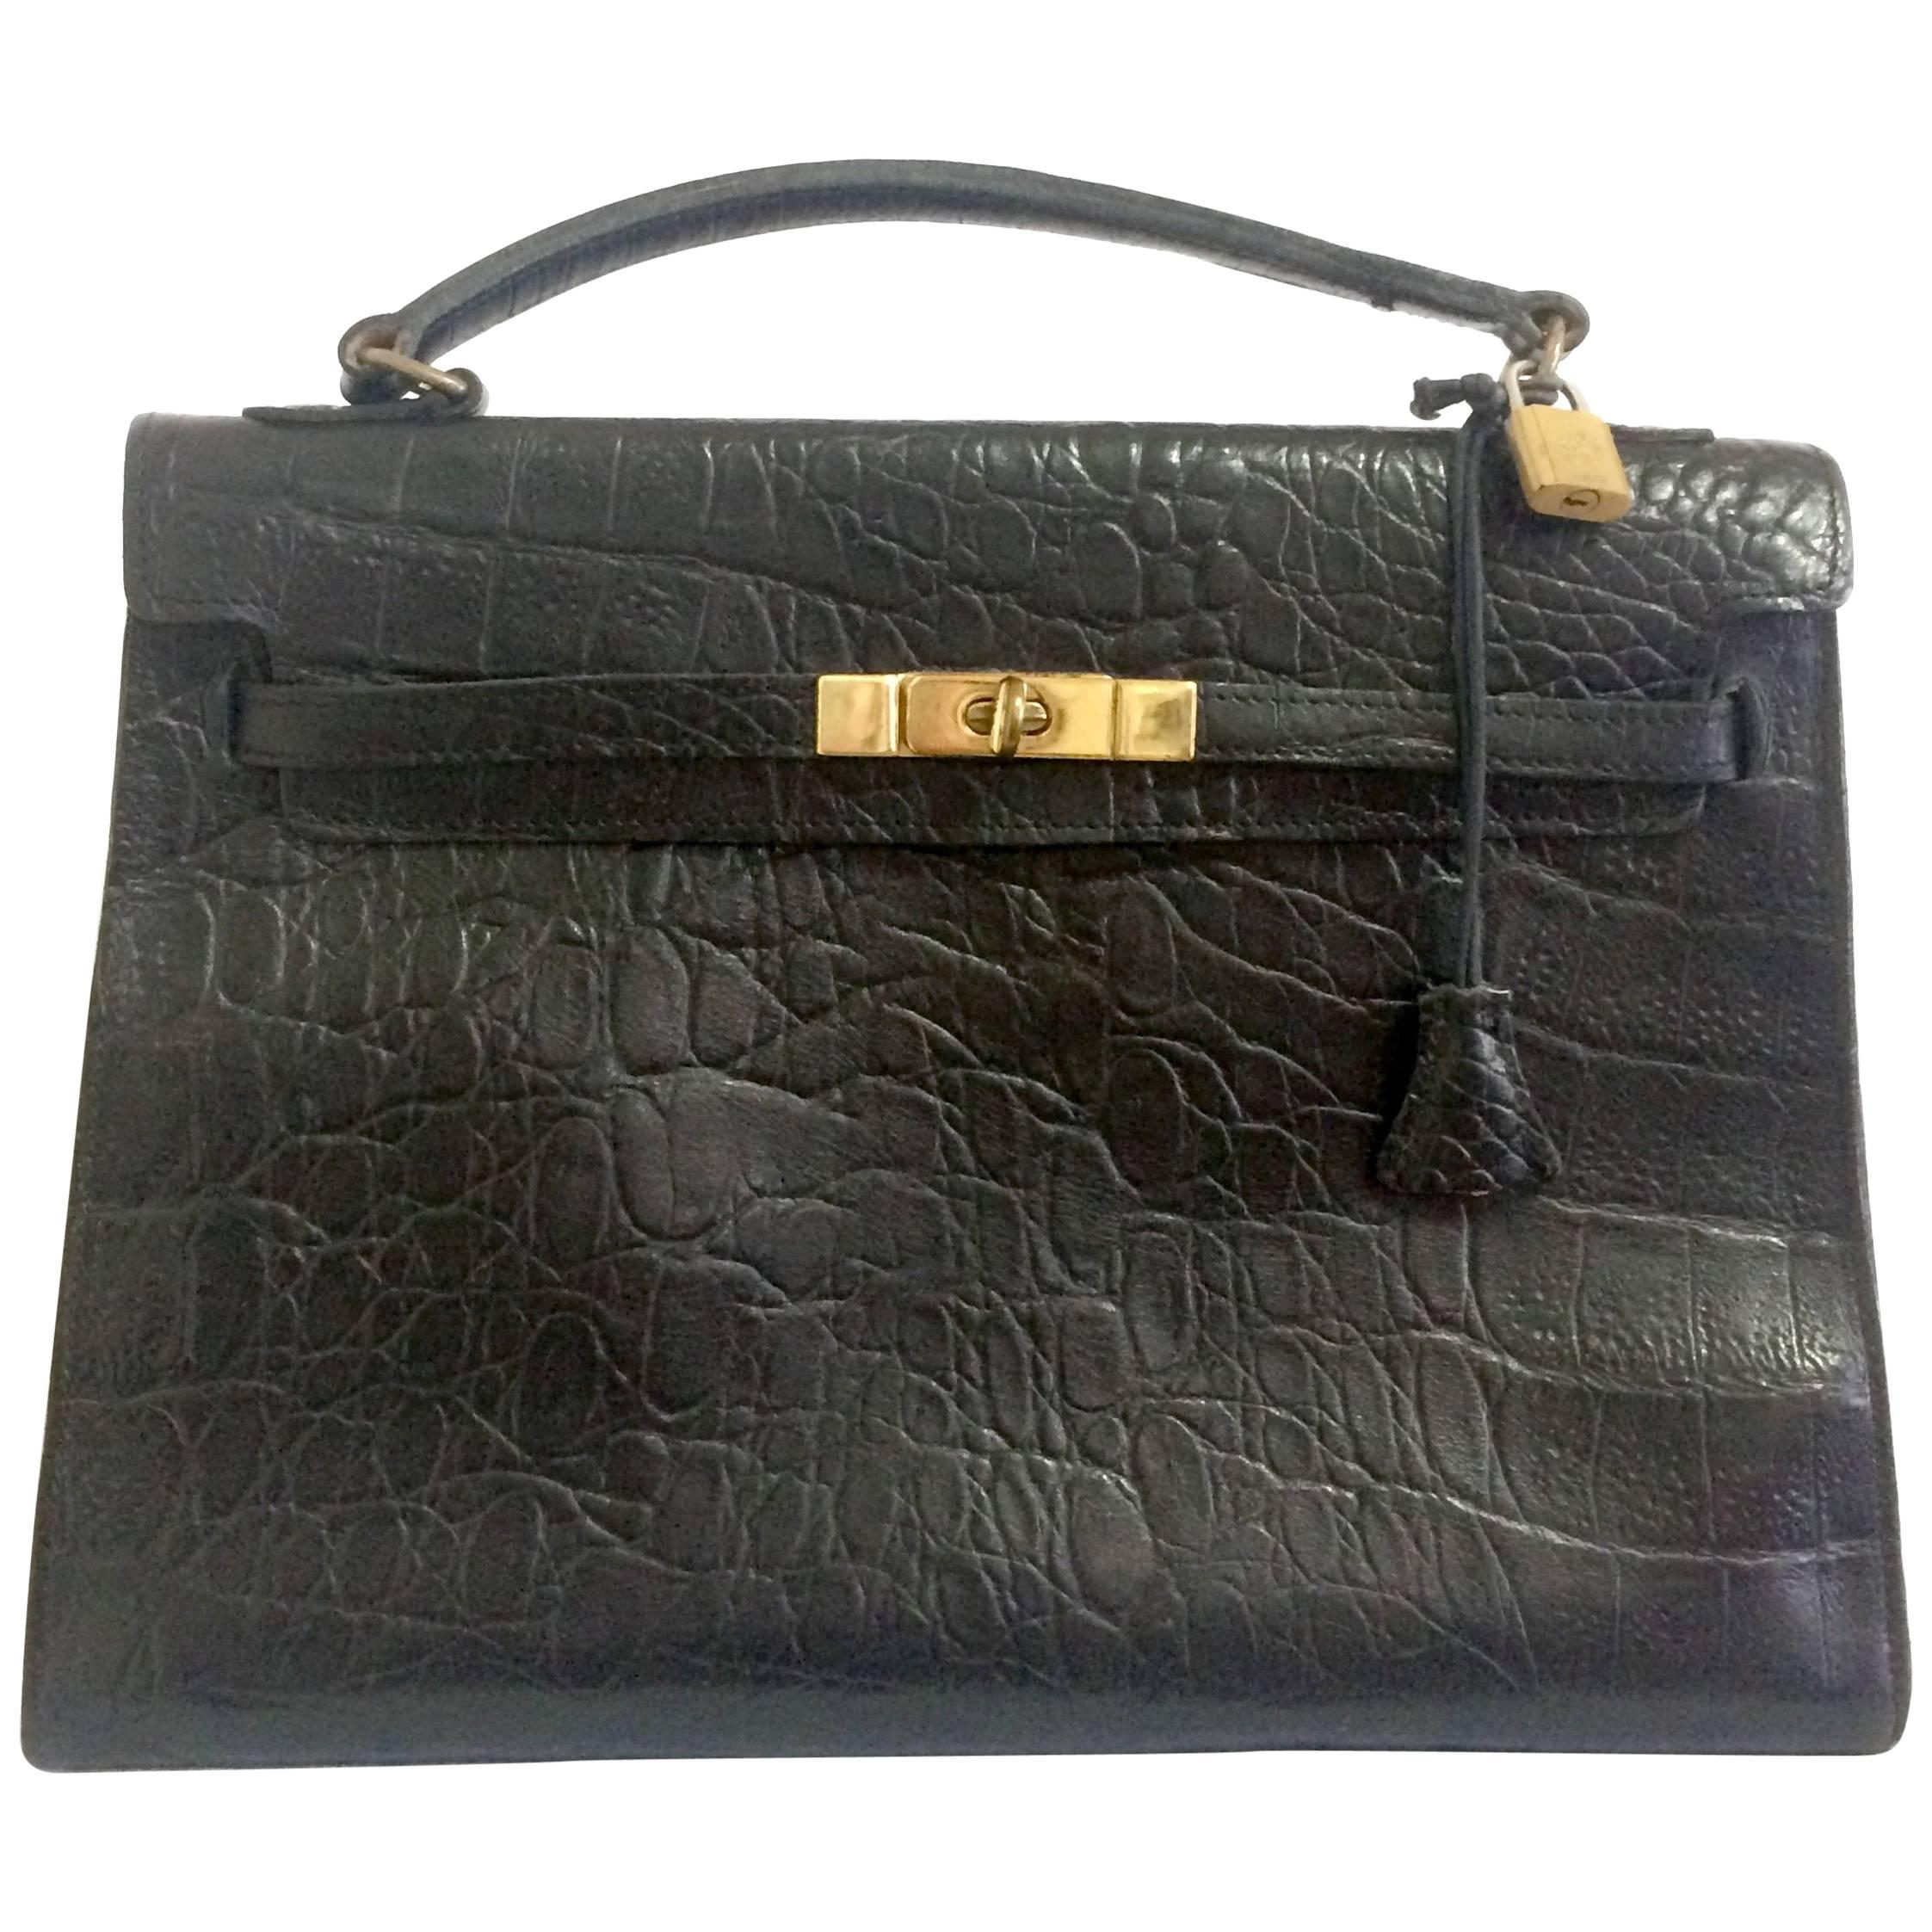 wholesale mulberry small new bayswater classic grain handbag 183bc efa85   best price vintage mulberry croc embossed black leather kelly bag.classic  bag by ... 98a0aabc68010